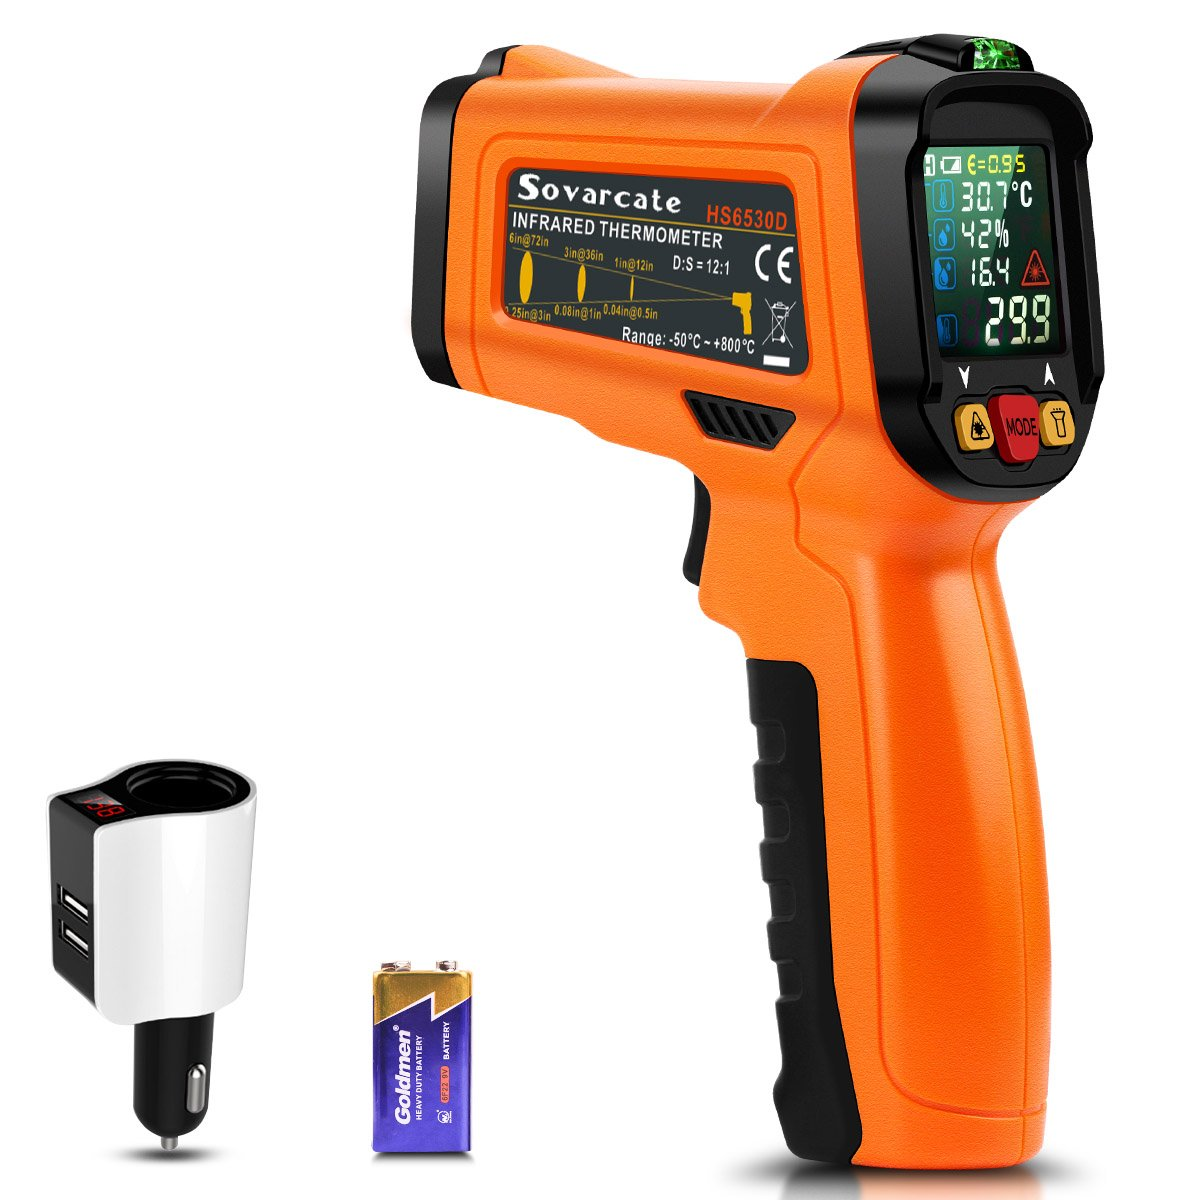 sovarcate Infrared Thermometer, Non Contact Kitchen Thermometer for Food/Air Conditioning/BBQ/Cooking/Industrial and Automotive Thermometer with Laser, Free 2.1A Car Charger